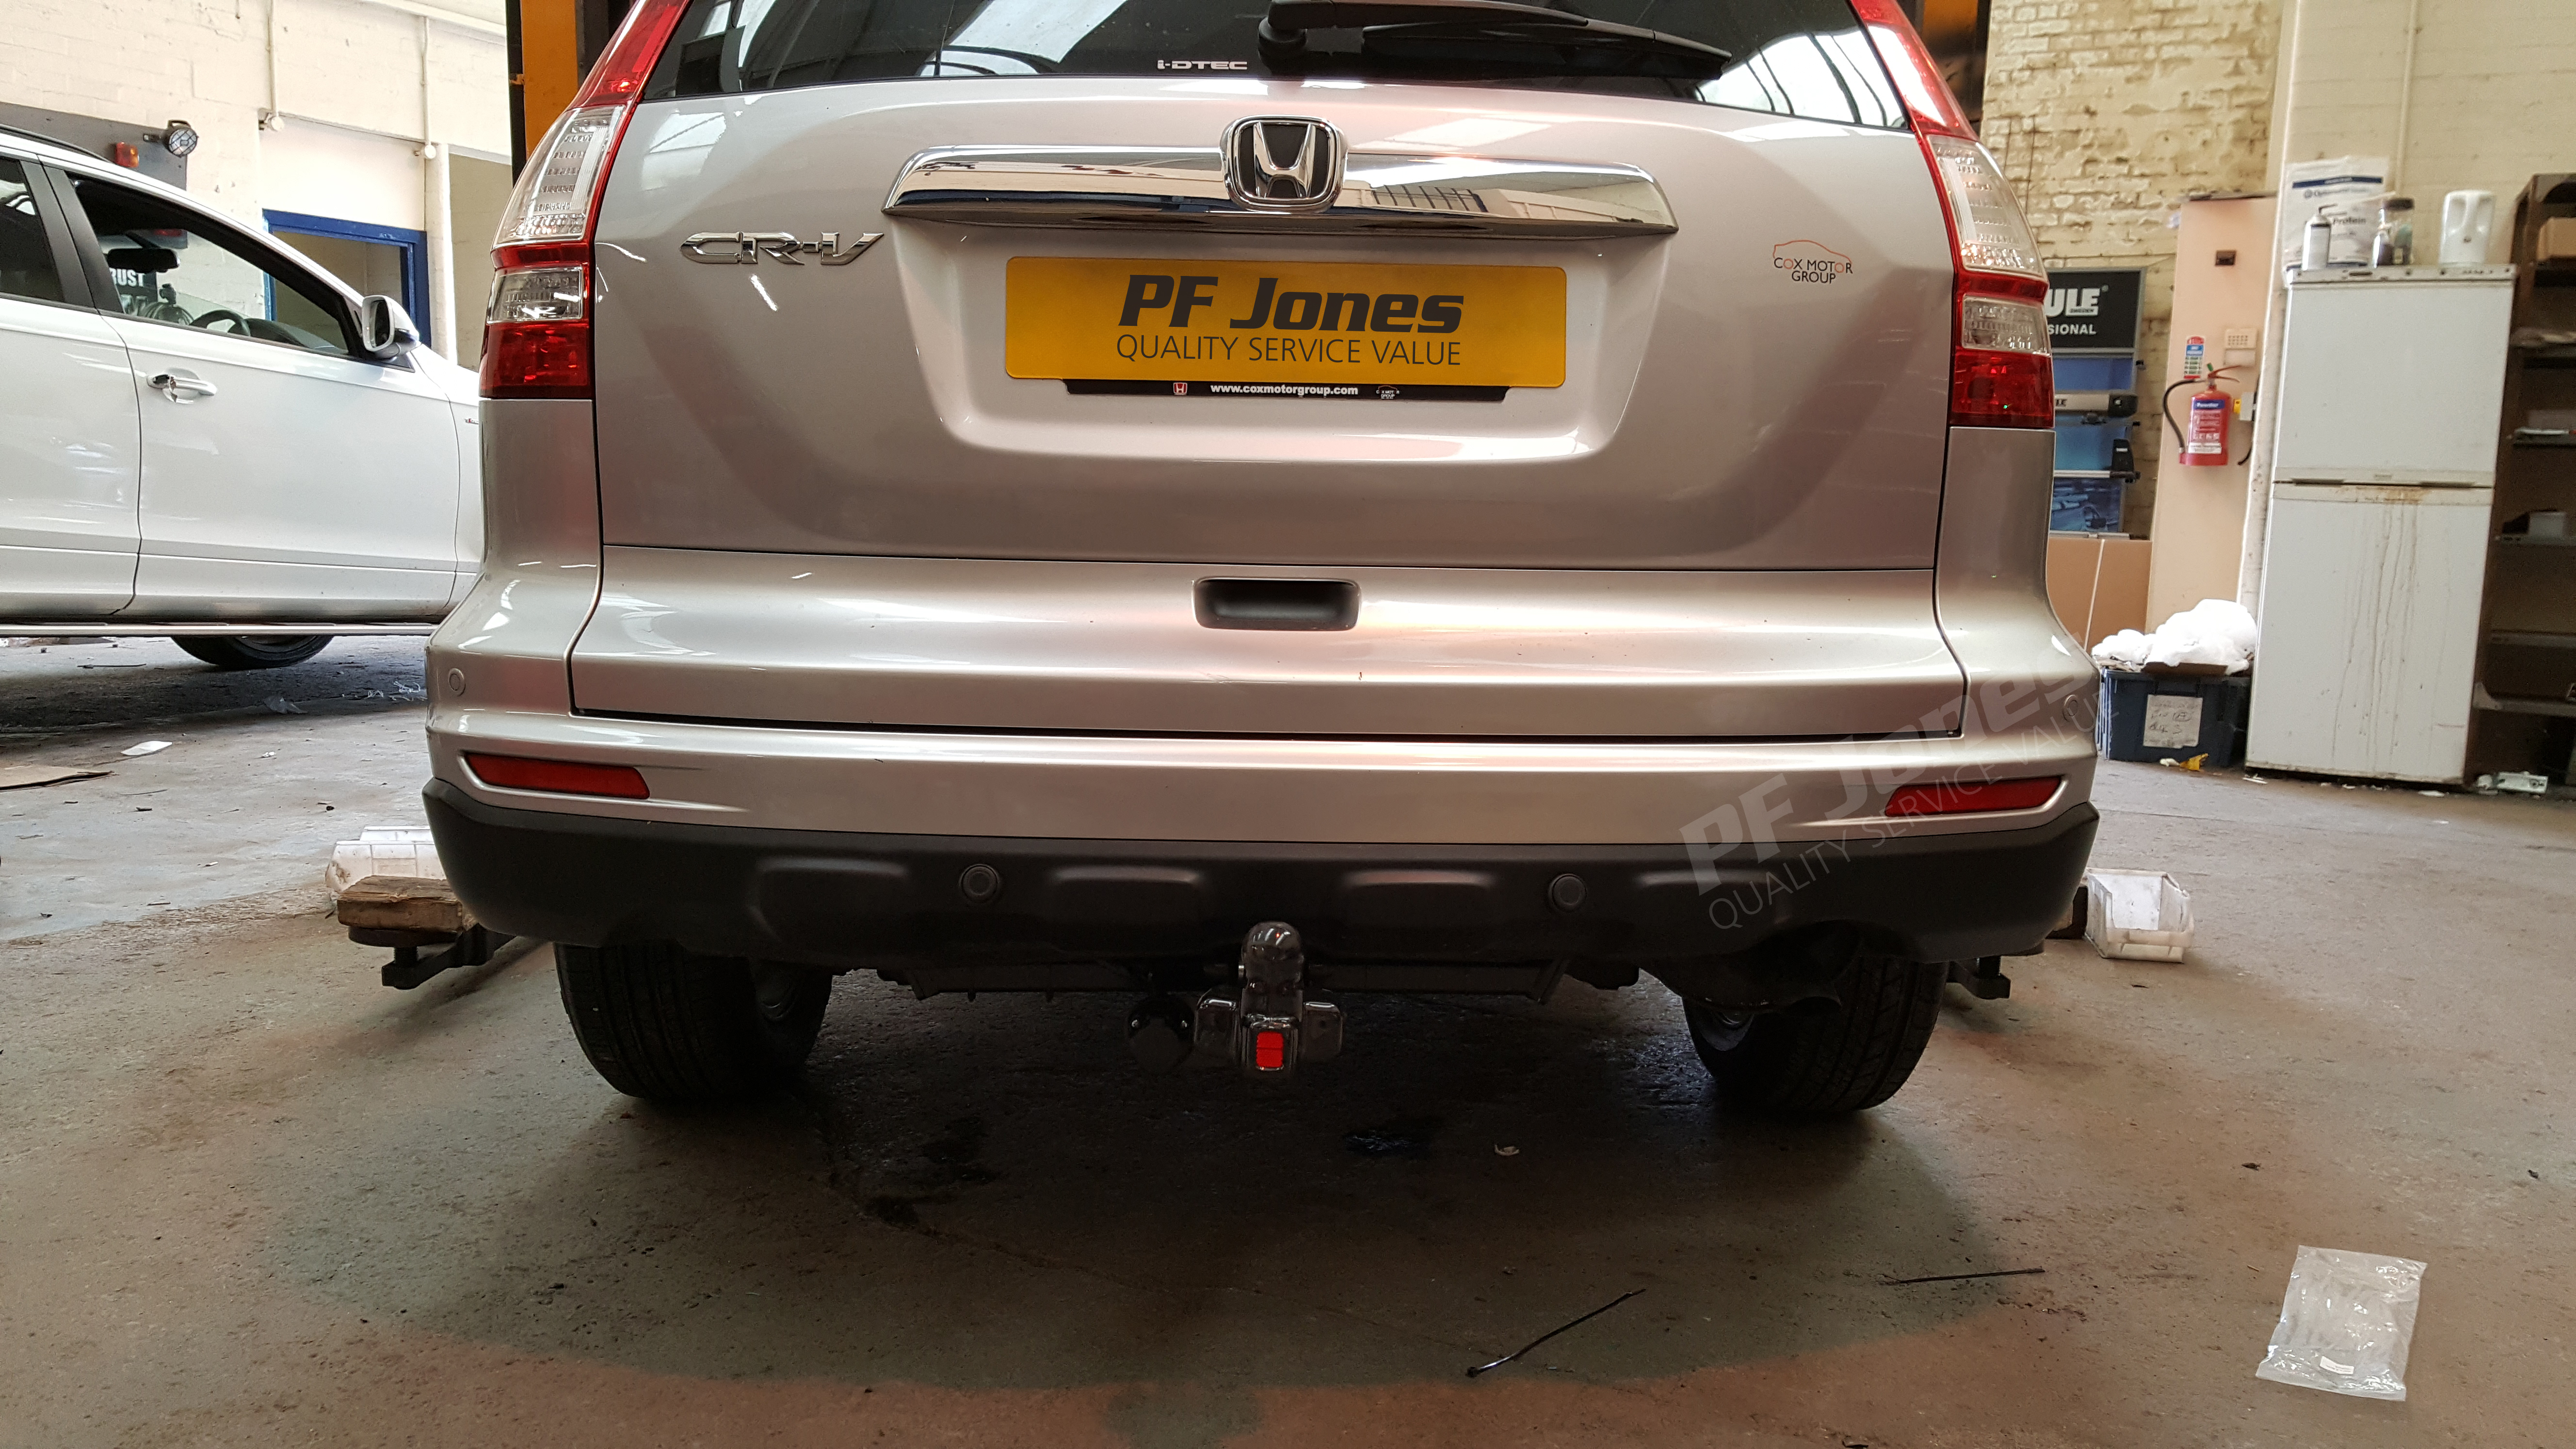 Honda Cr V 2007 Onwards Witter Flange Tow Bar Rh Pfjones Co Uk 2014 Honda  CR V Honda CR V Towing Capability